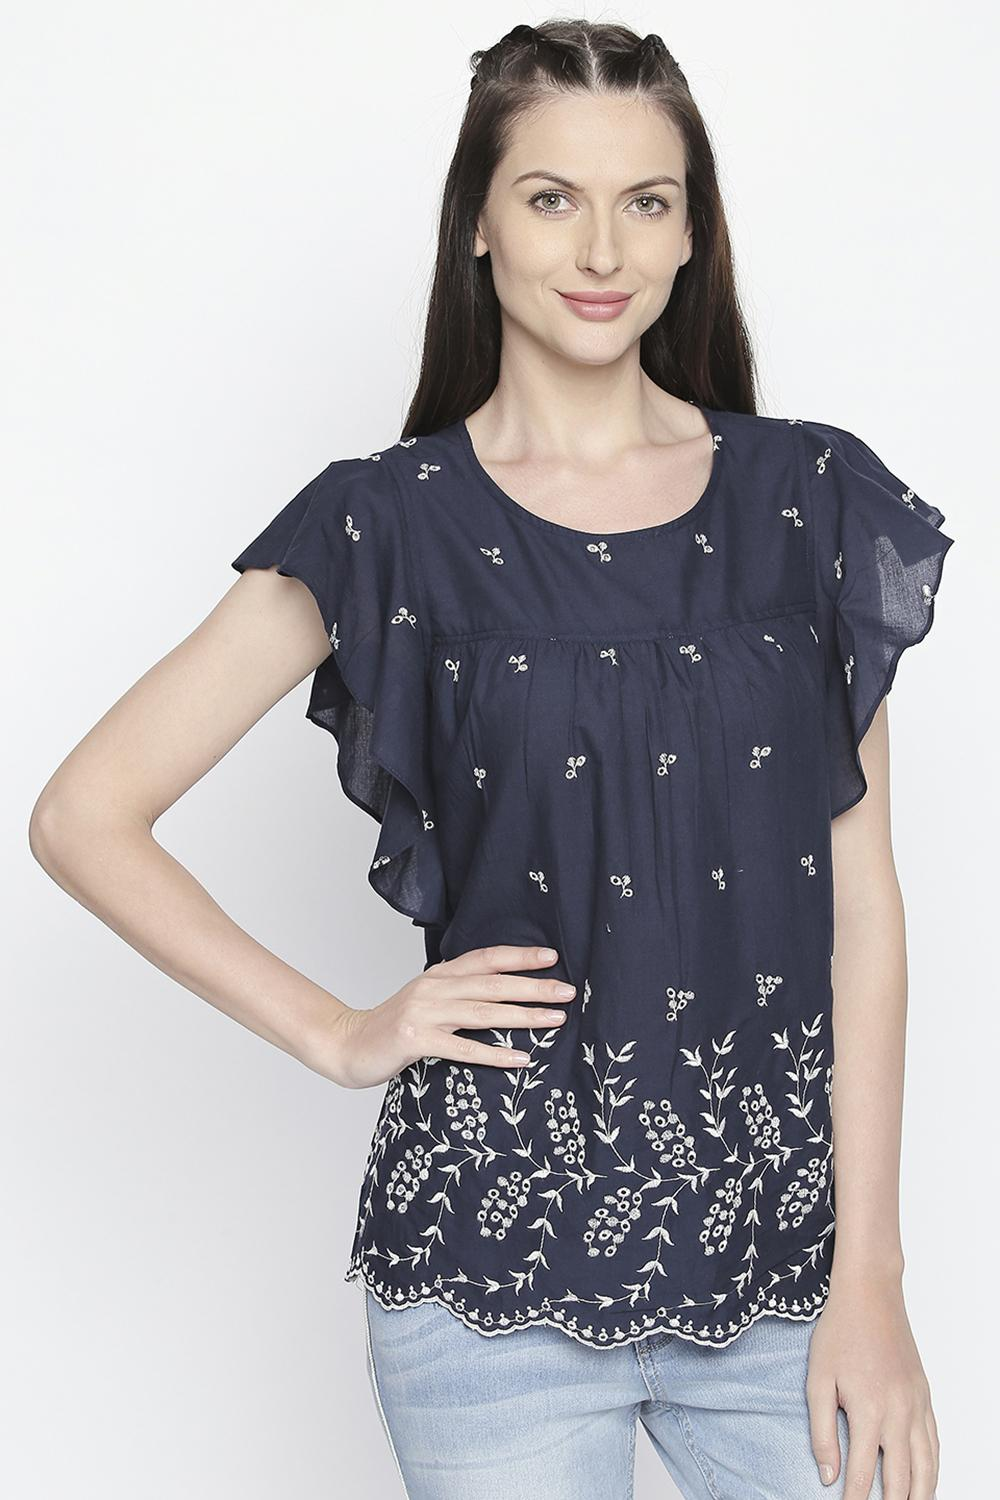 36a40de8 Bare Denim Tees & Tops, Butterfly Sleeved Printed Top for Women at  Pantaloons.com